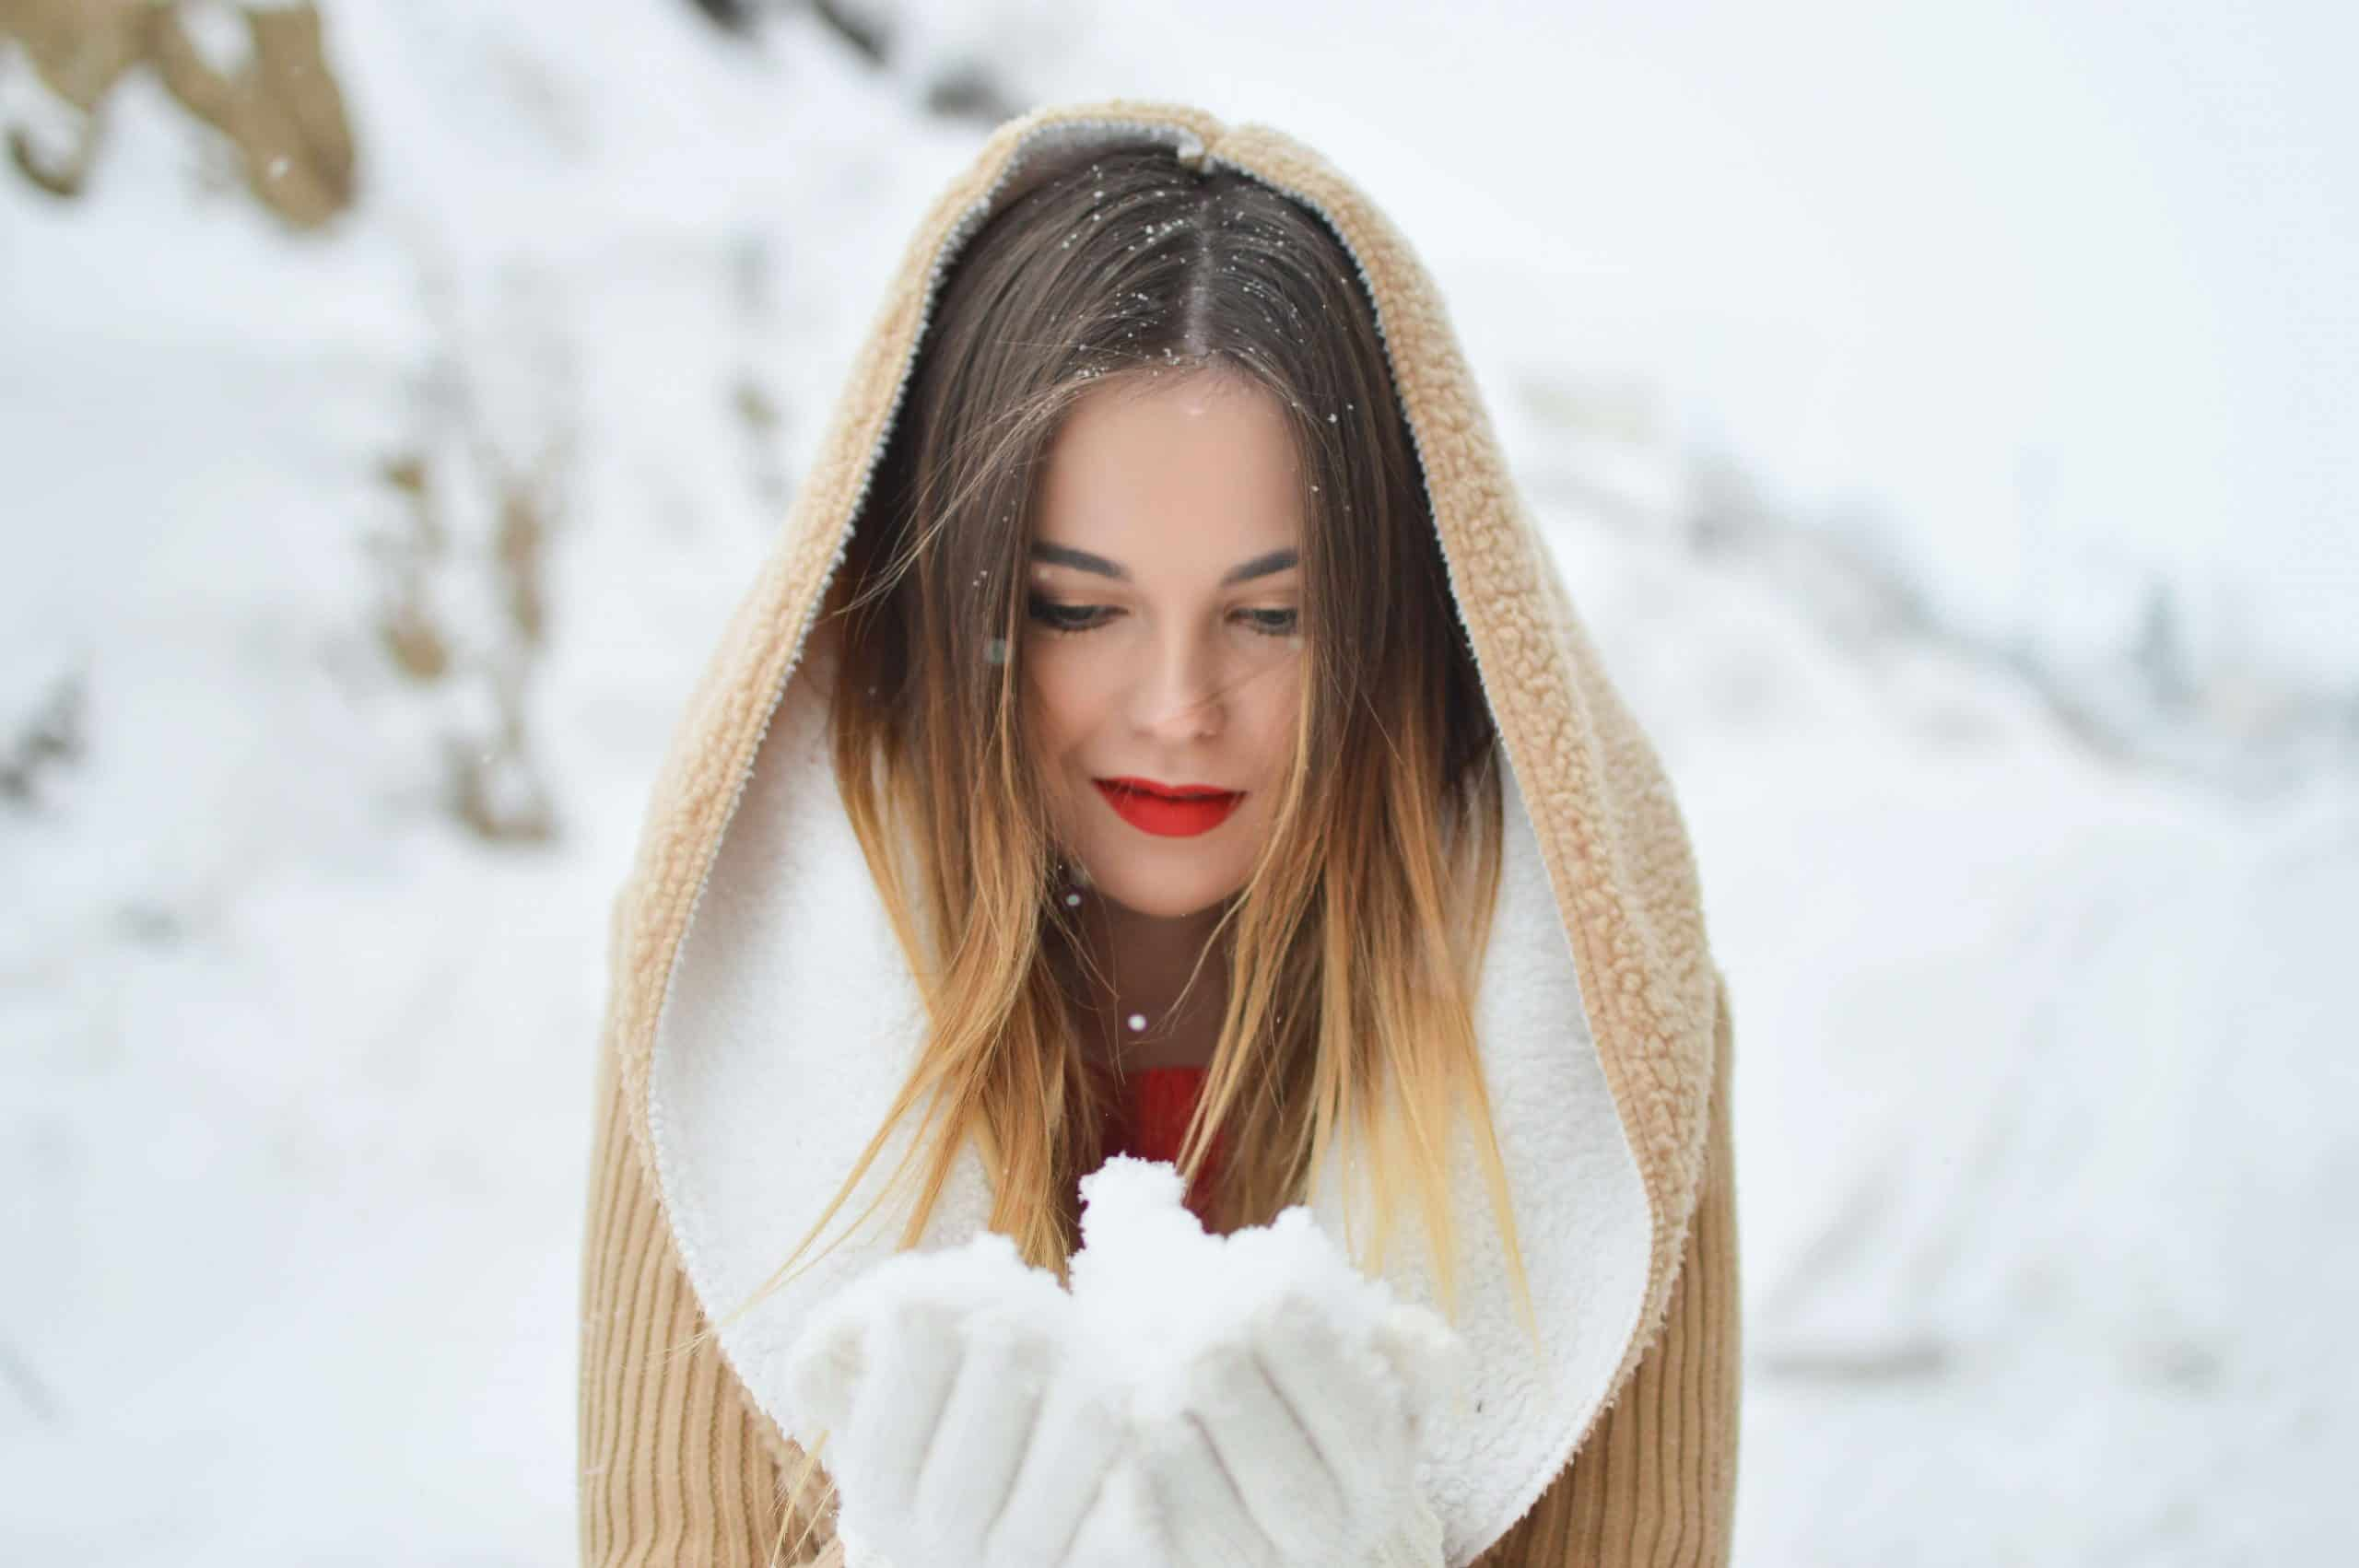 Woman holding a bit of snow in her gloved hands